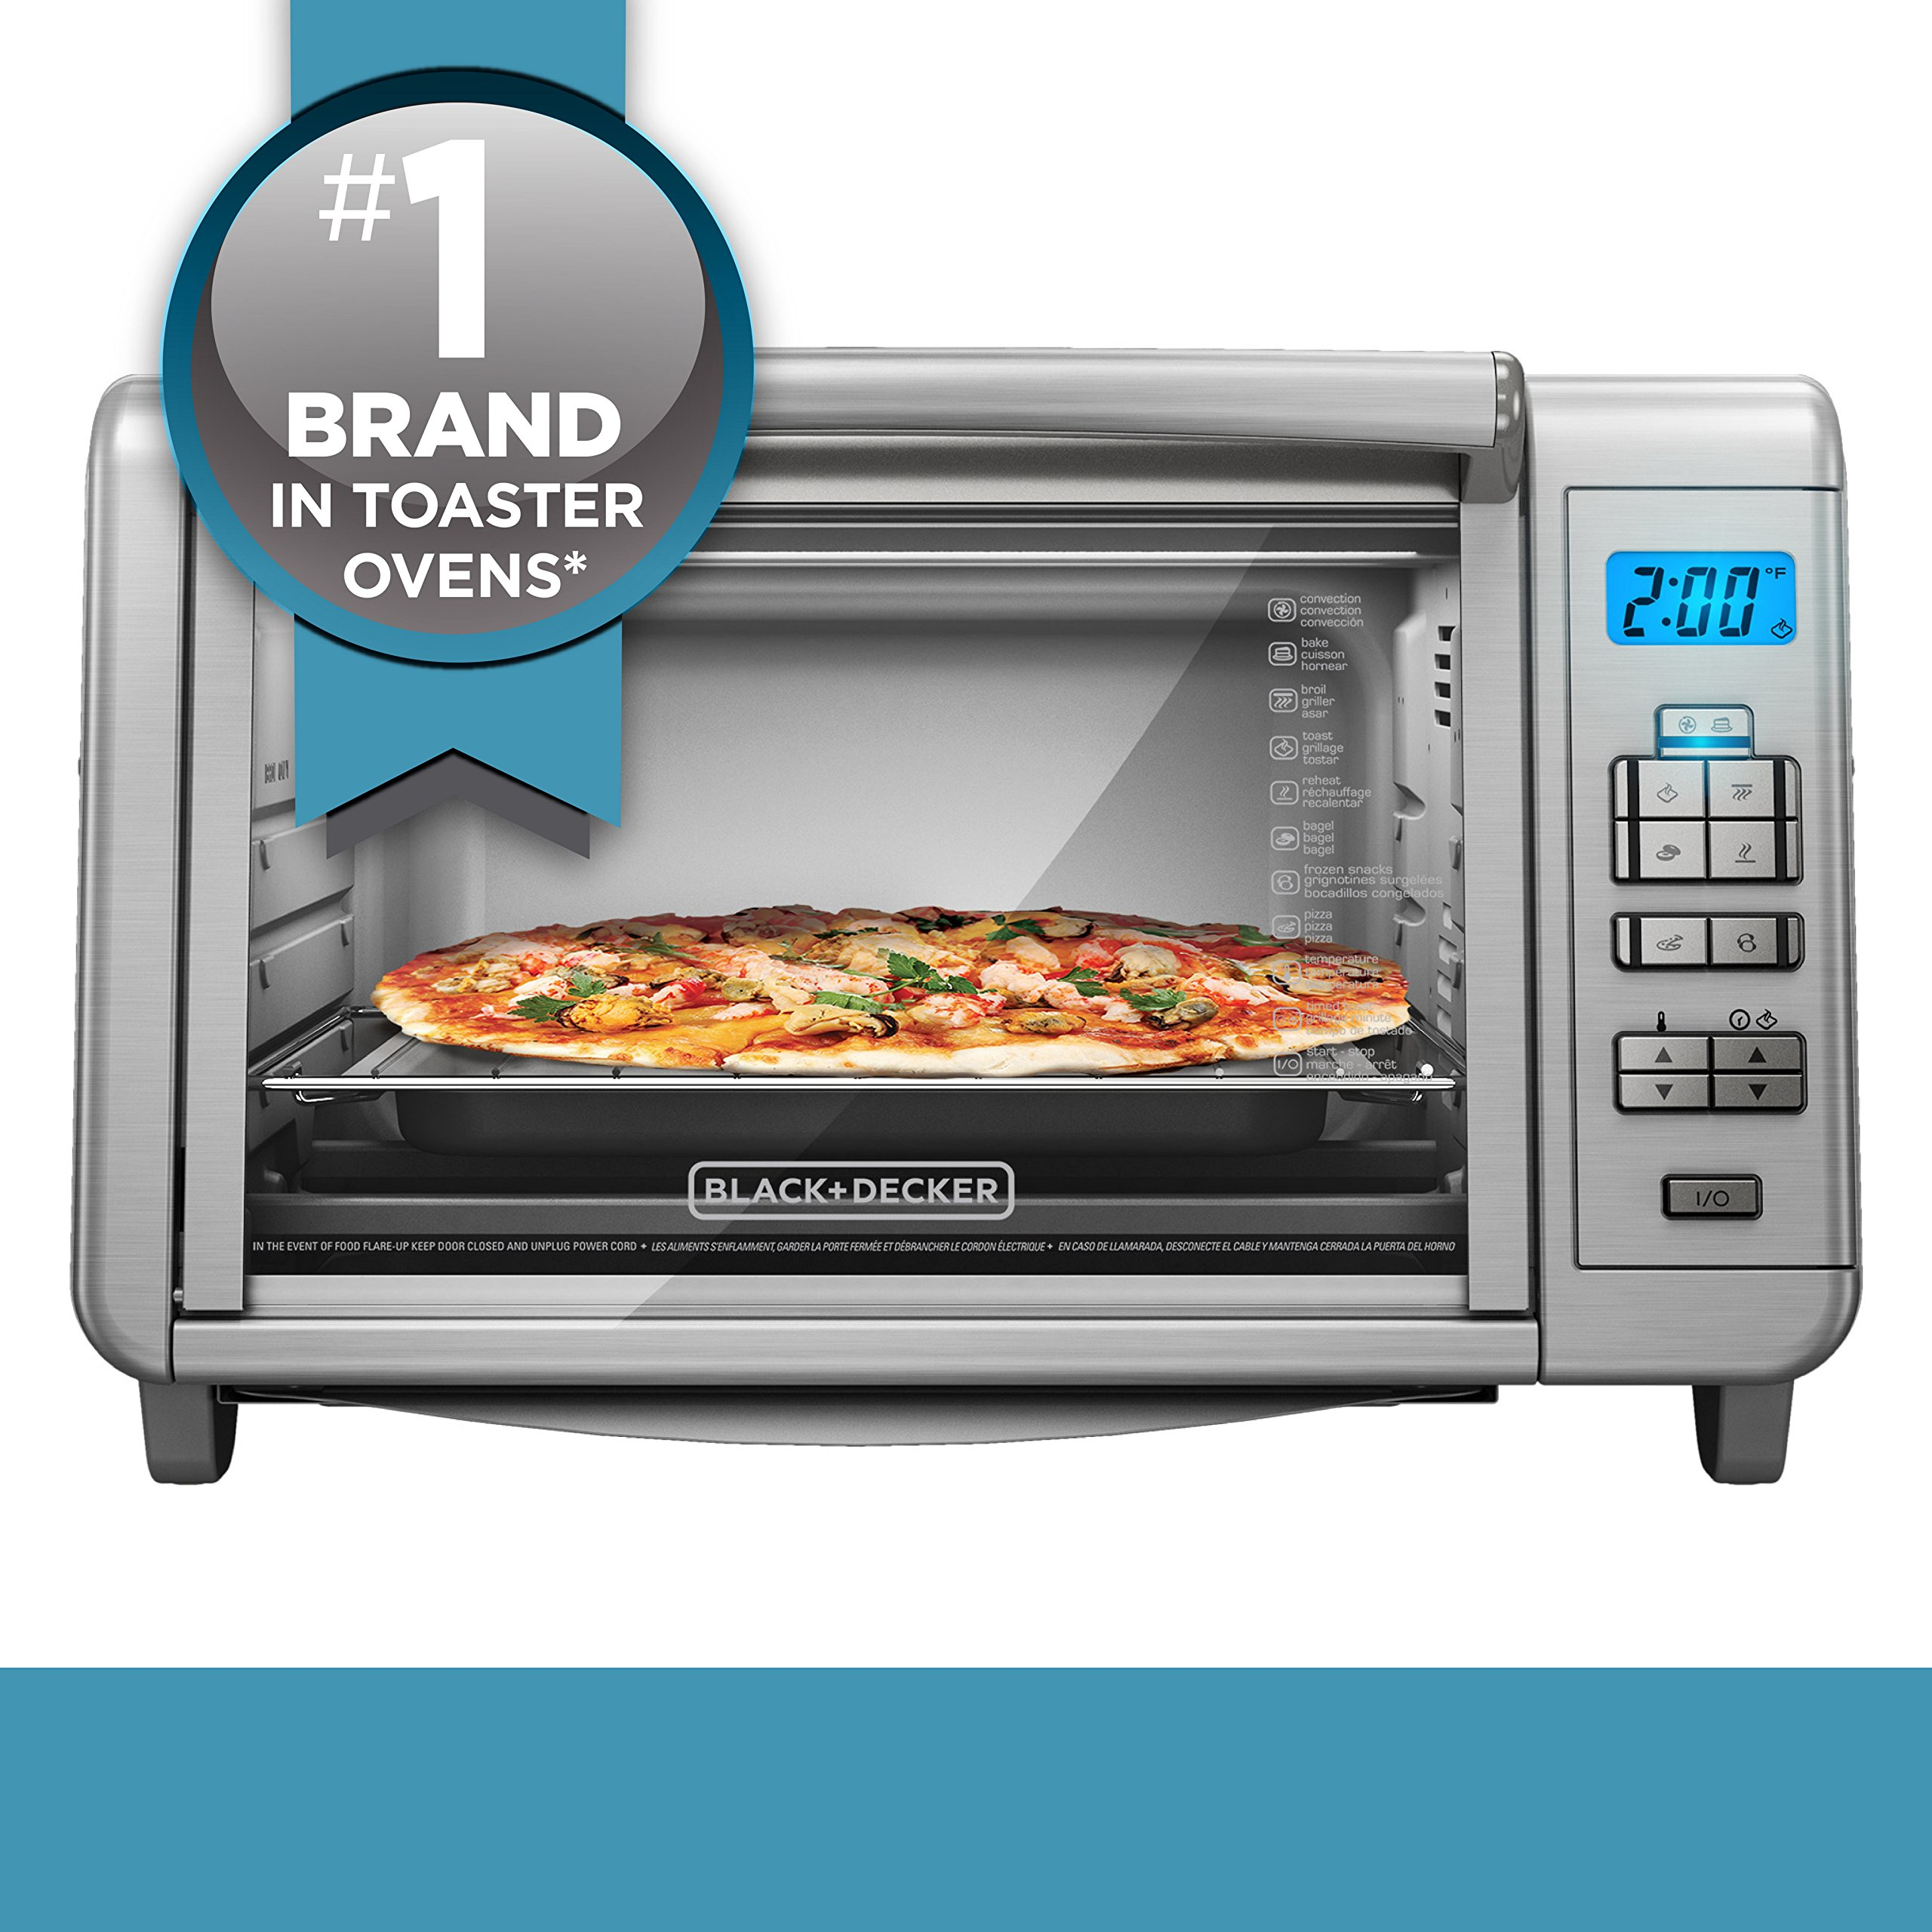 BLACK+DECKER 6-Slice Digital Convection Countertop Toaster Oven, Stainless Steel, TO3280SSD by BLACK+DECKER (Image #5)